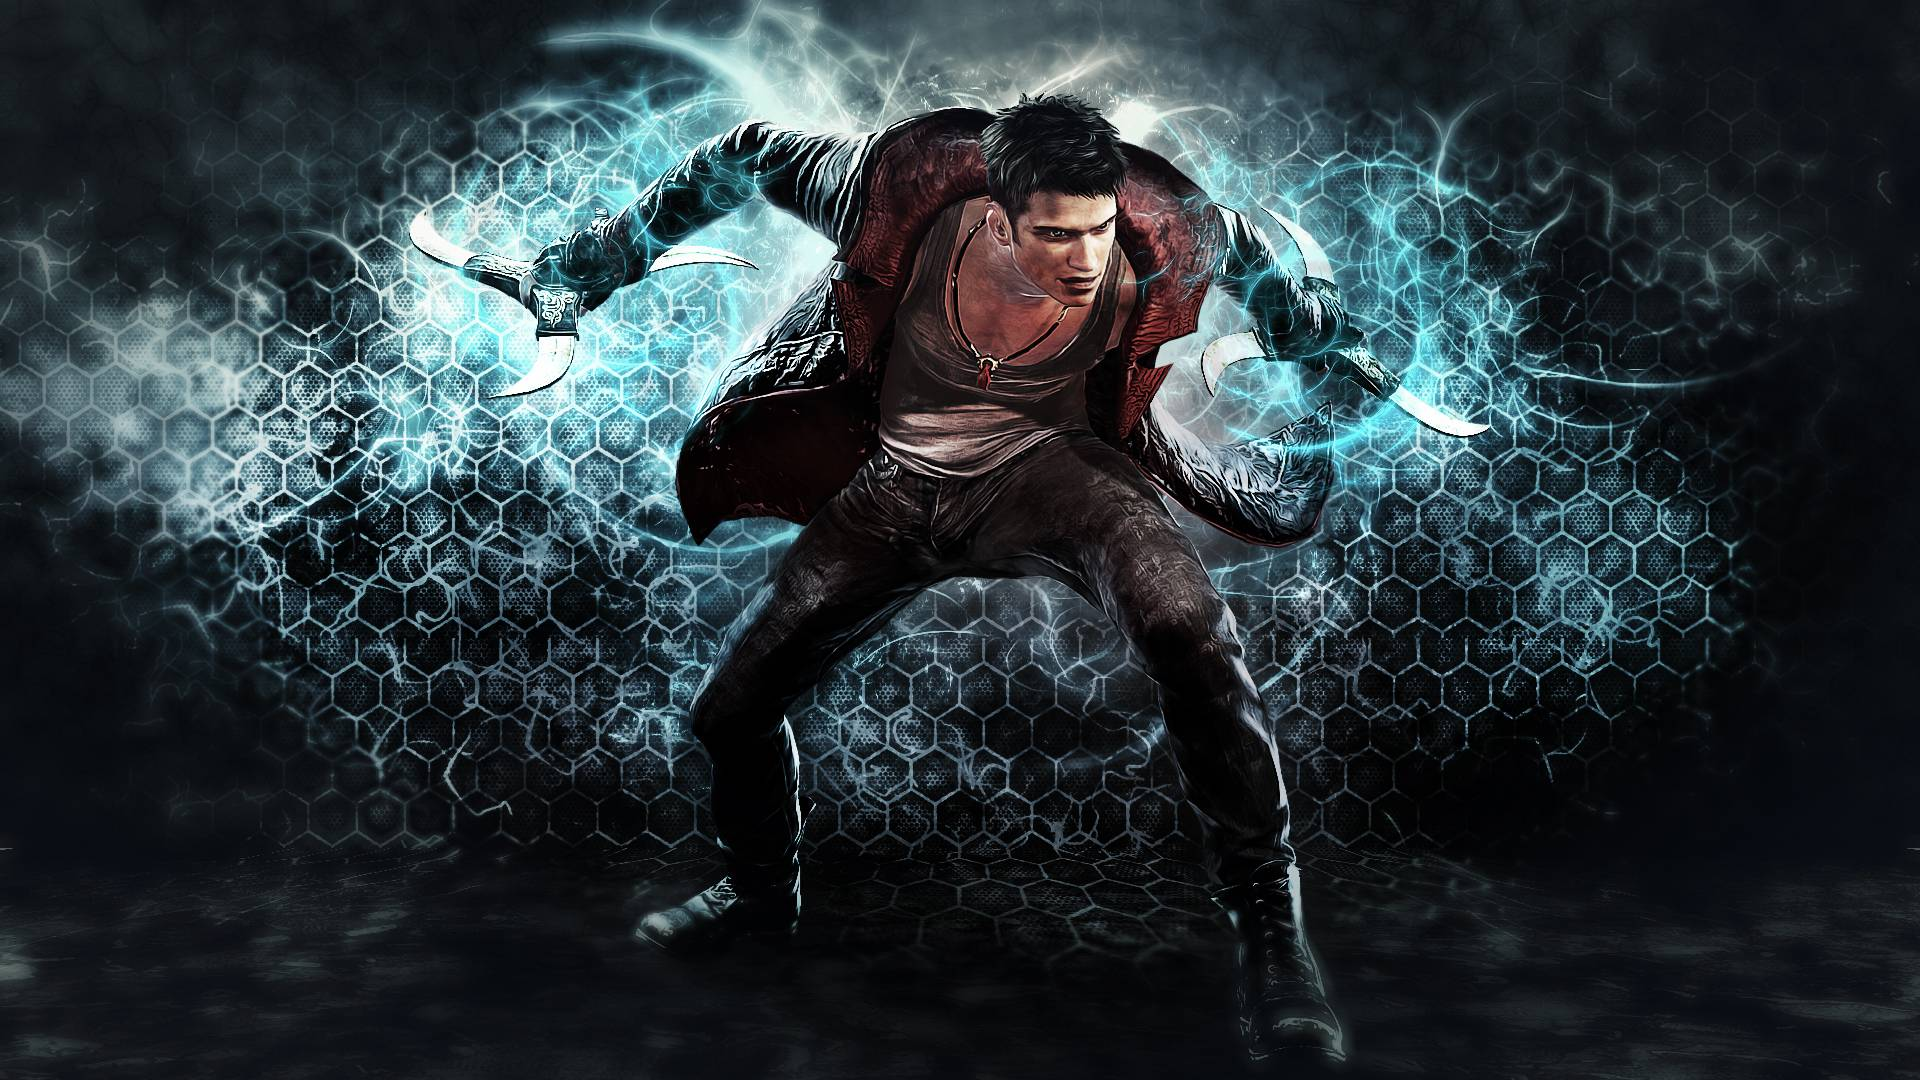 Devil May Cry Anime Wallpaper 1920x1080